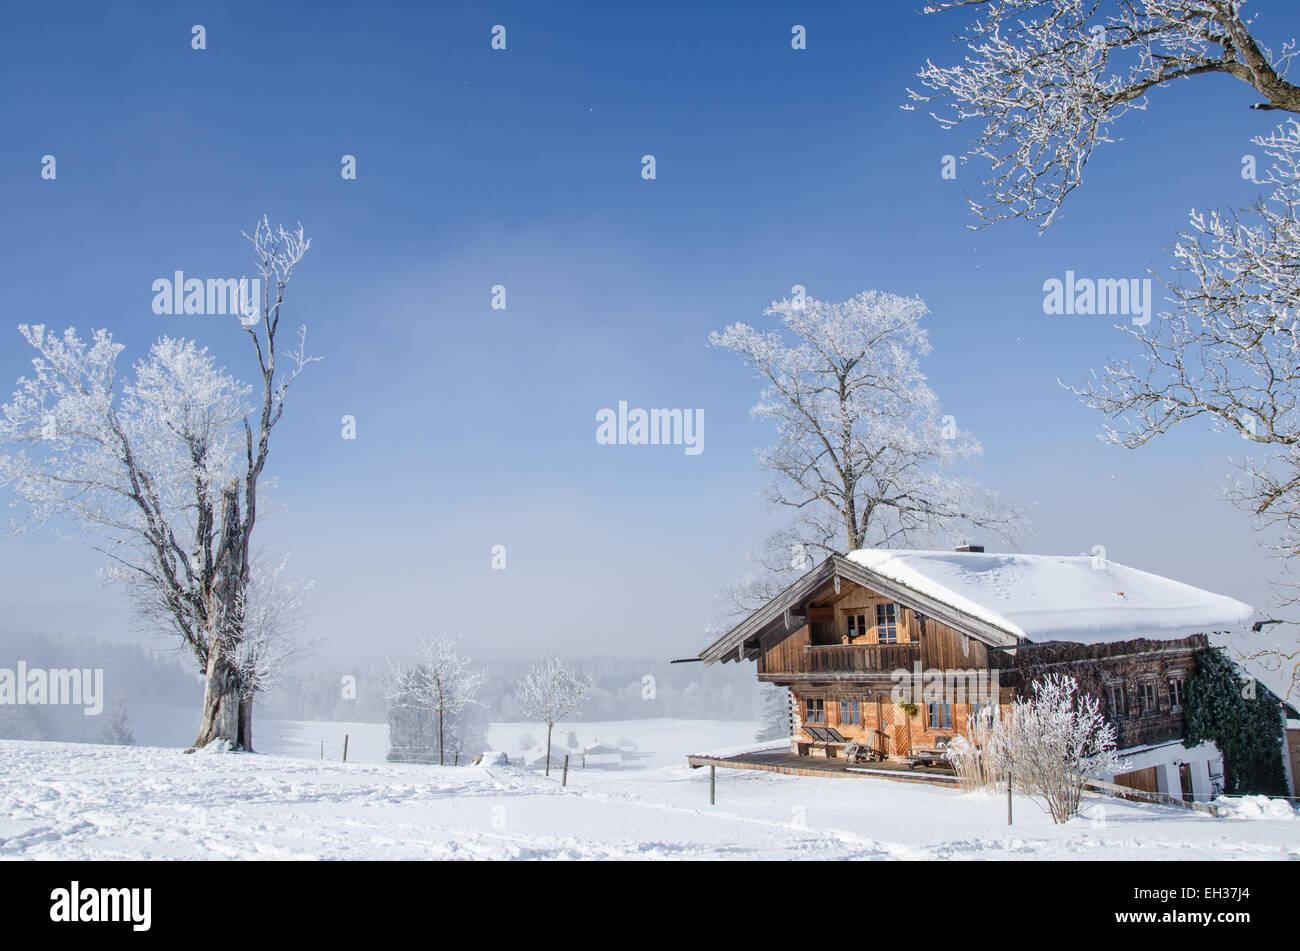 Farmhouse in Upper Bavaria on a wintery day with hoar frost and a clear sky - Stock Image